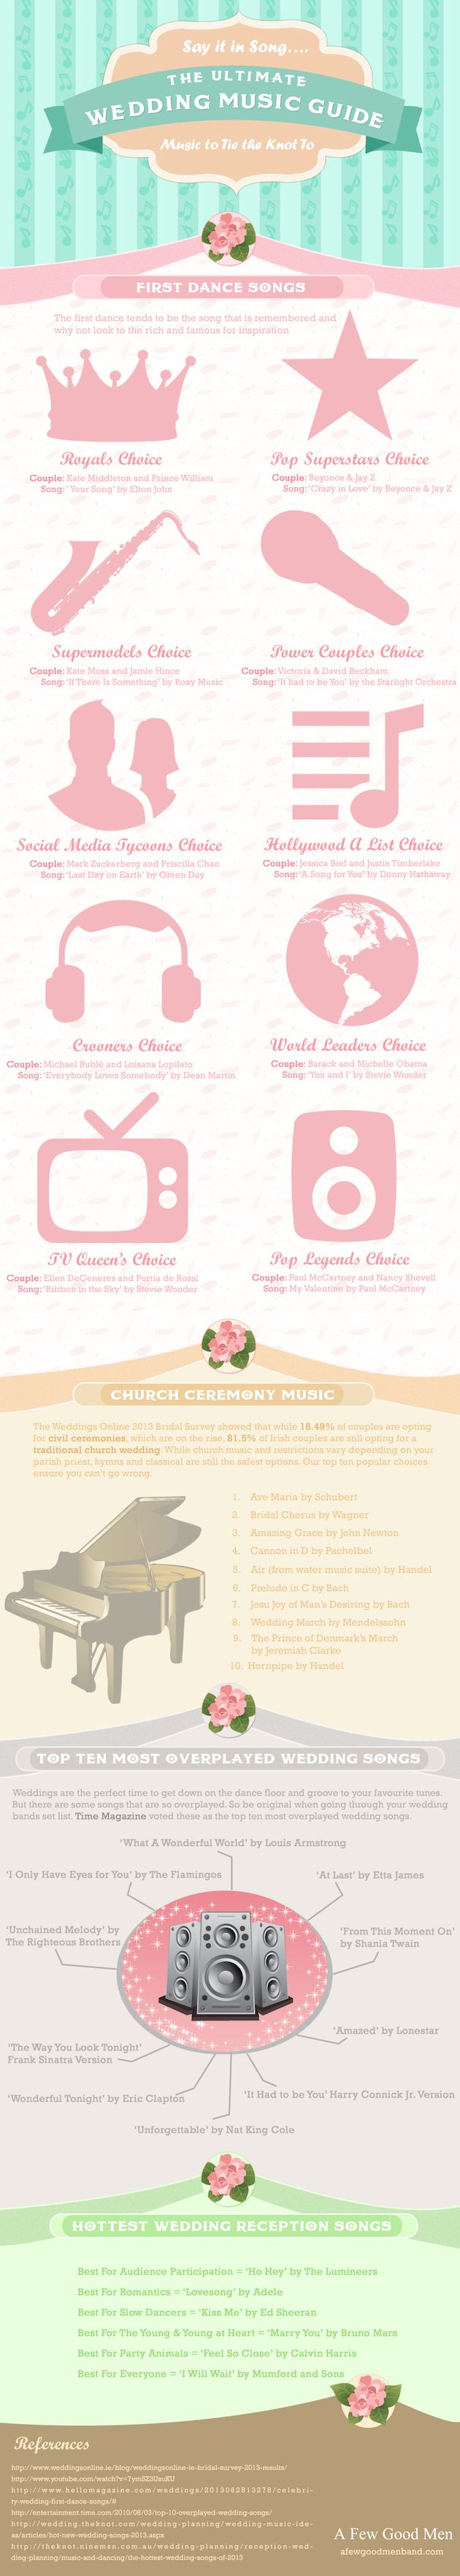 Ultimate #wedding guide infographic